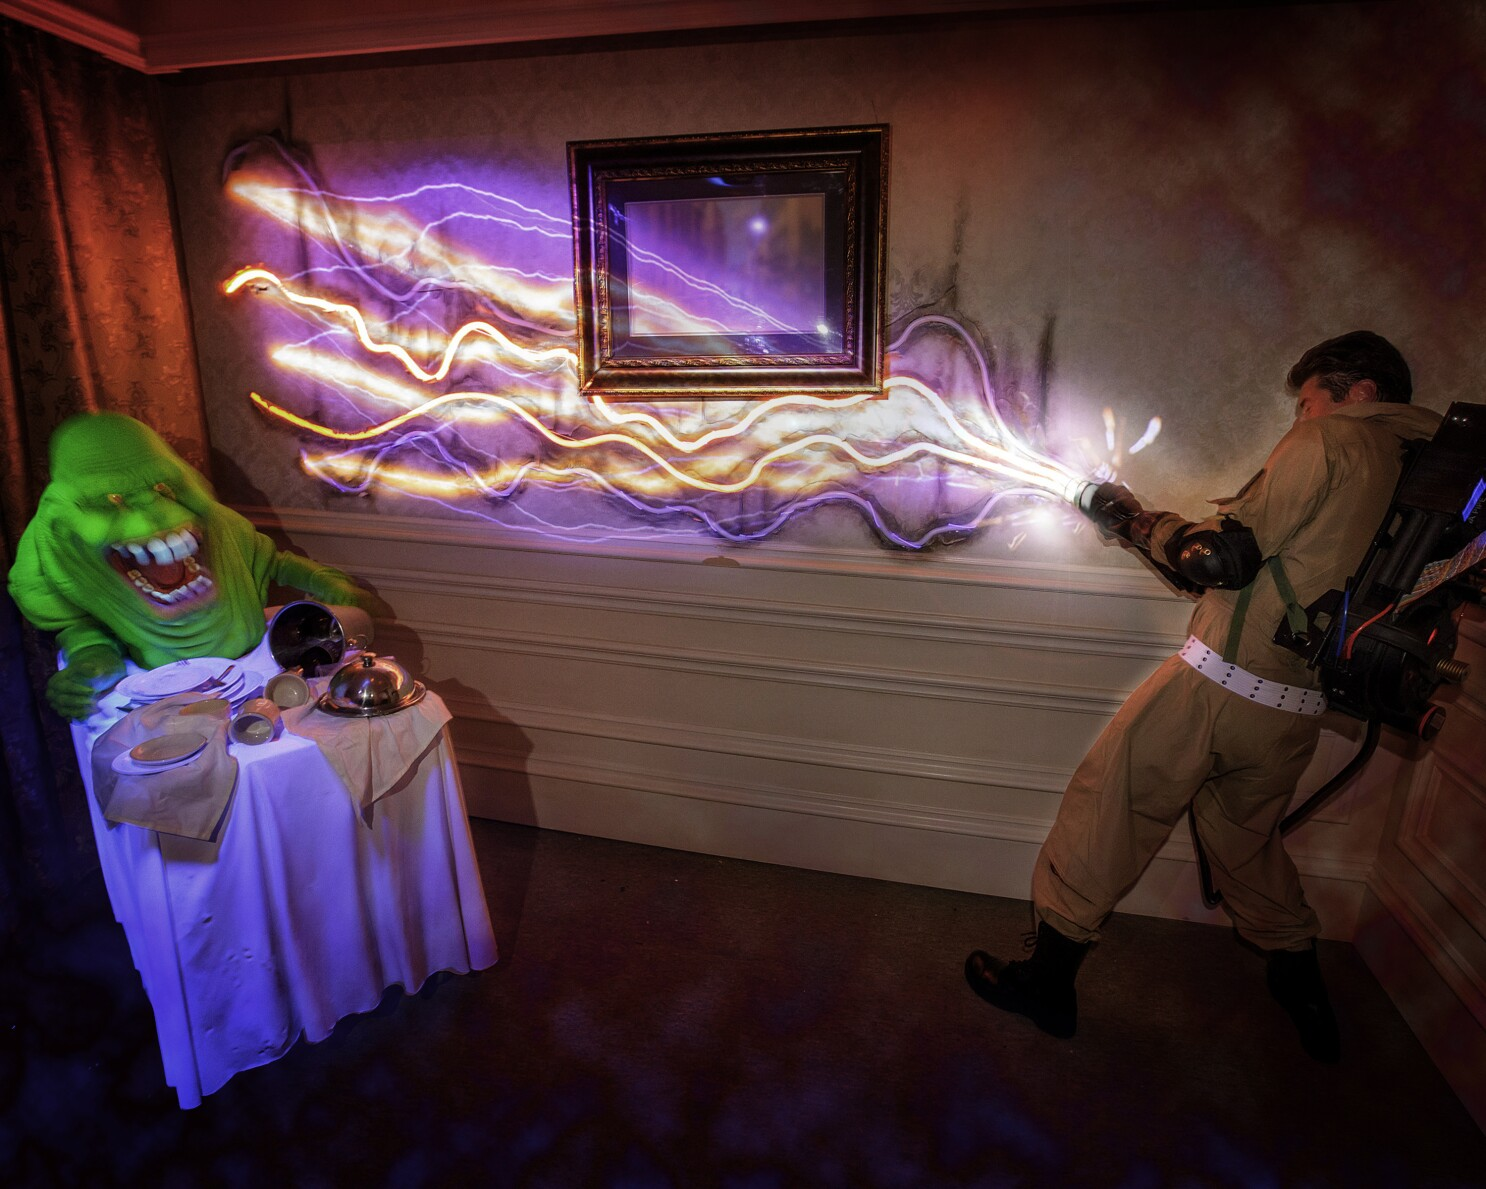 Halloween Mazes 2020 Los Angeles A Halloween maze evolution, from Freddie to 'Us' and 'Ghostbusters